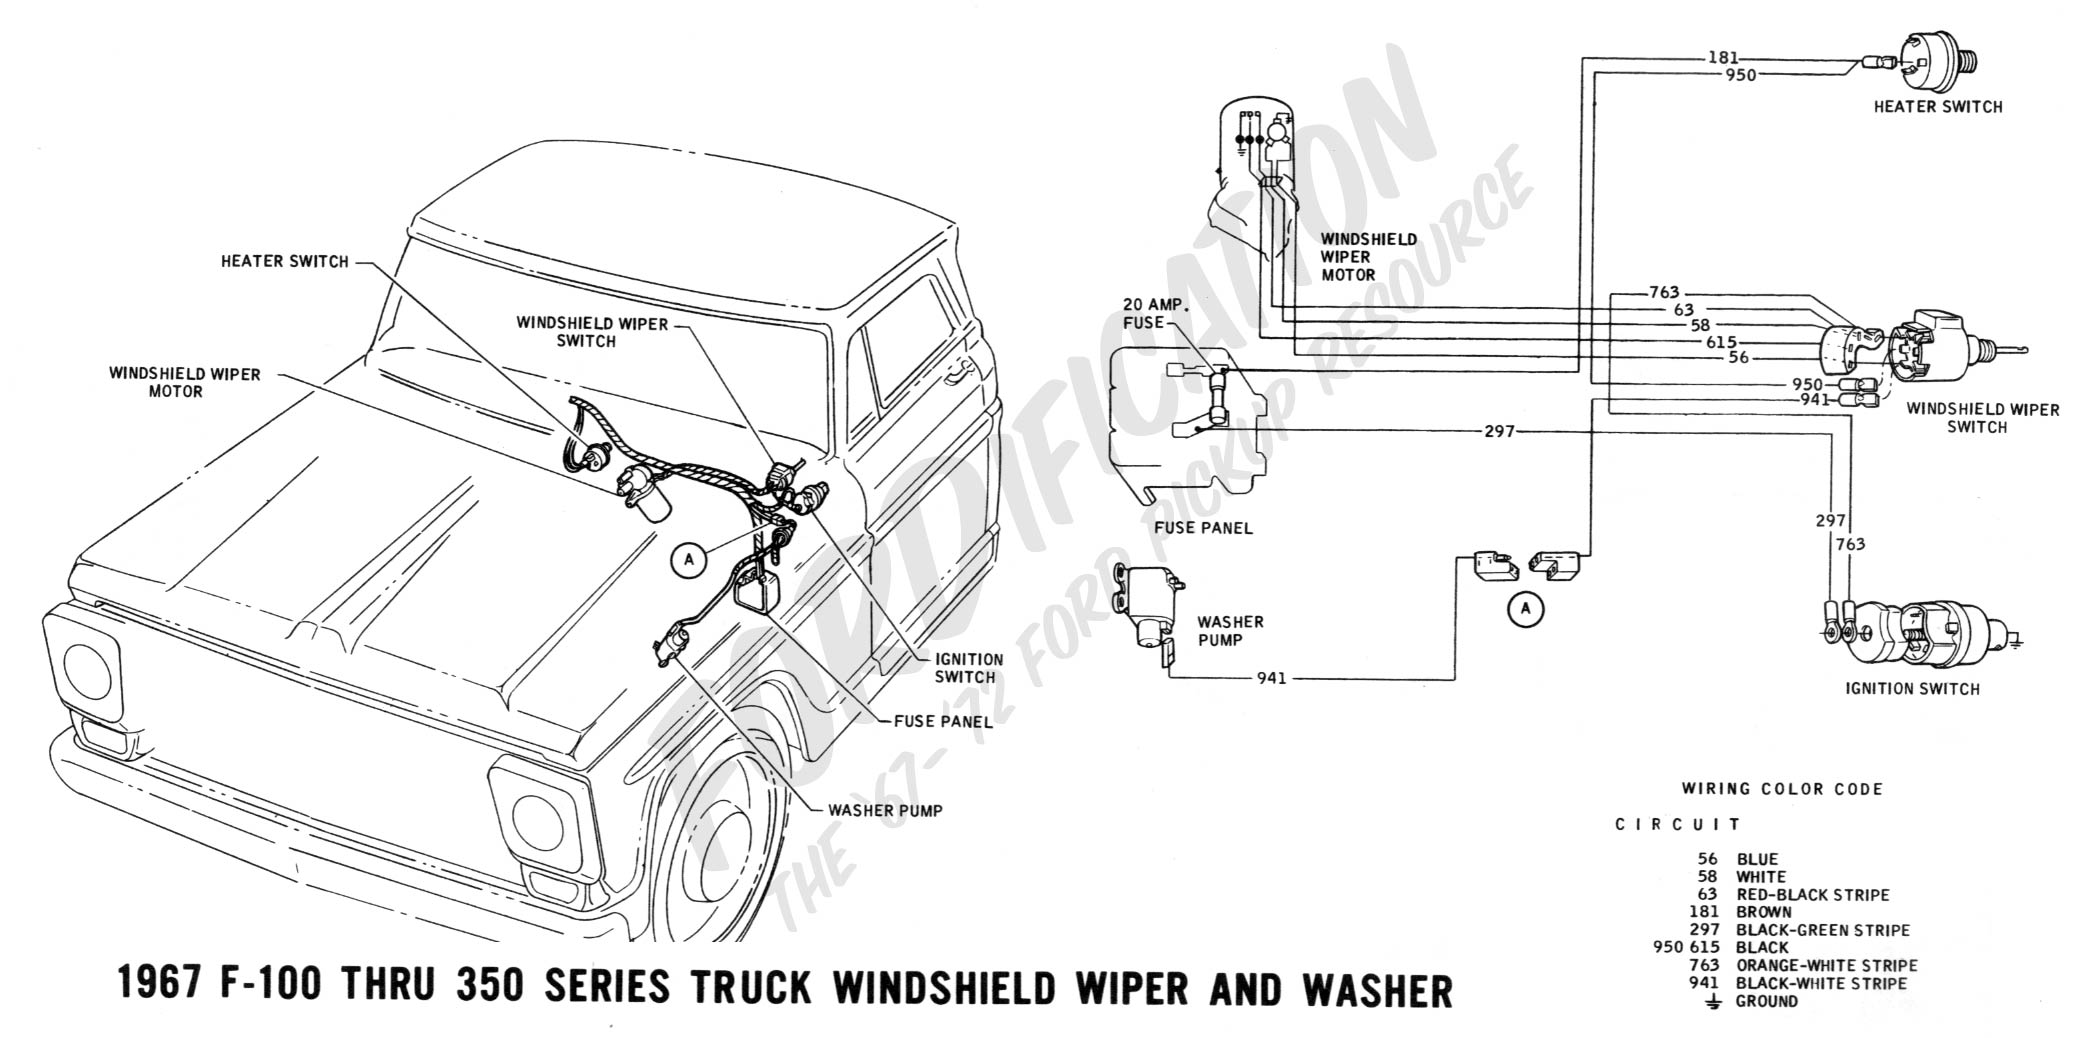 wiring 1967wipers wiper wiring diagram wiper wiring diagram for 1985 chevy vega 1999 ford explorer rear wiper wiring diagram at readyjetset.co